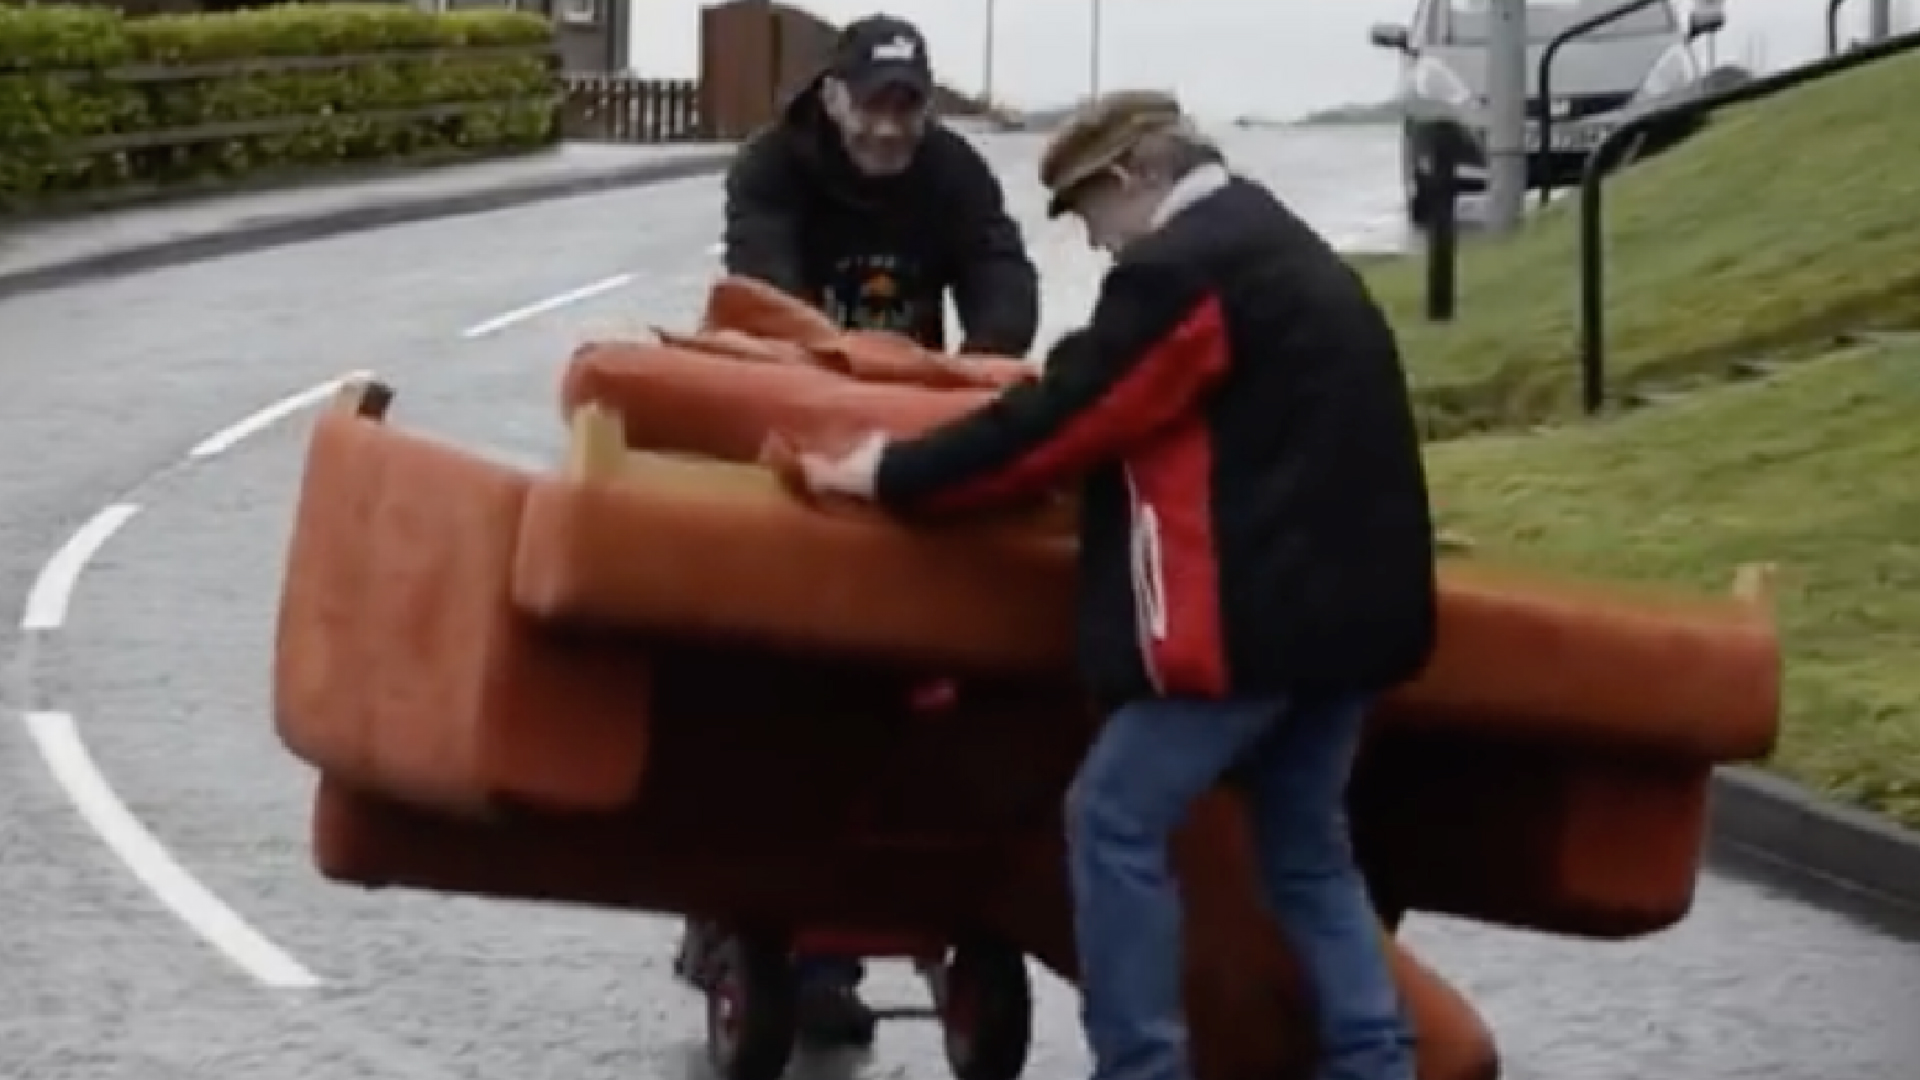 Couch moving